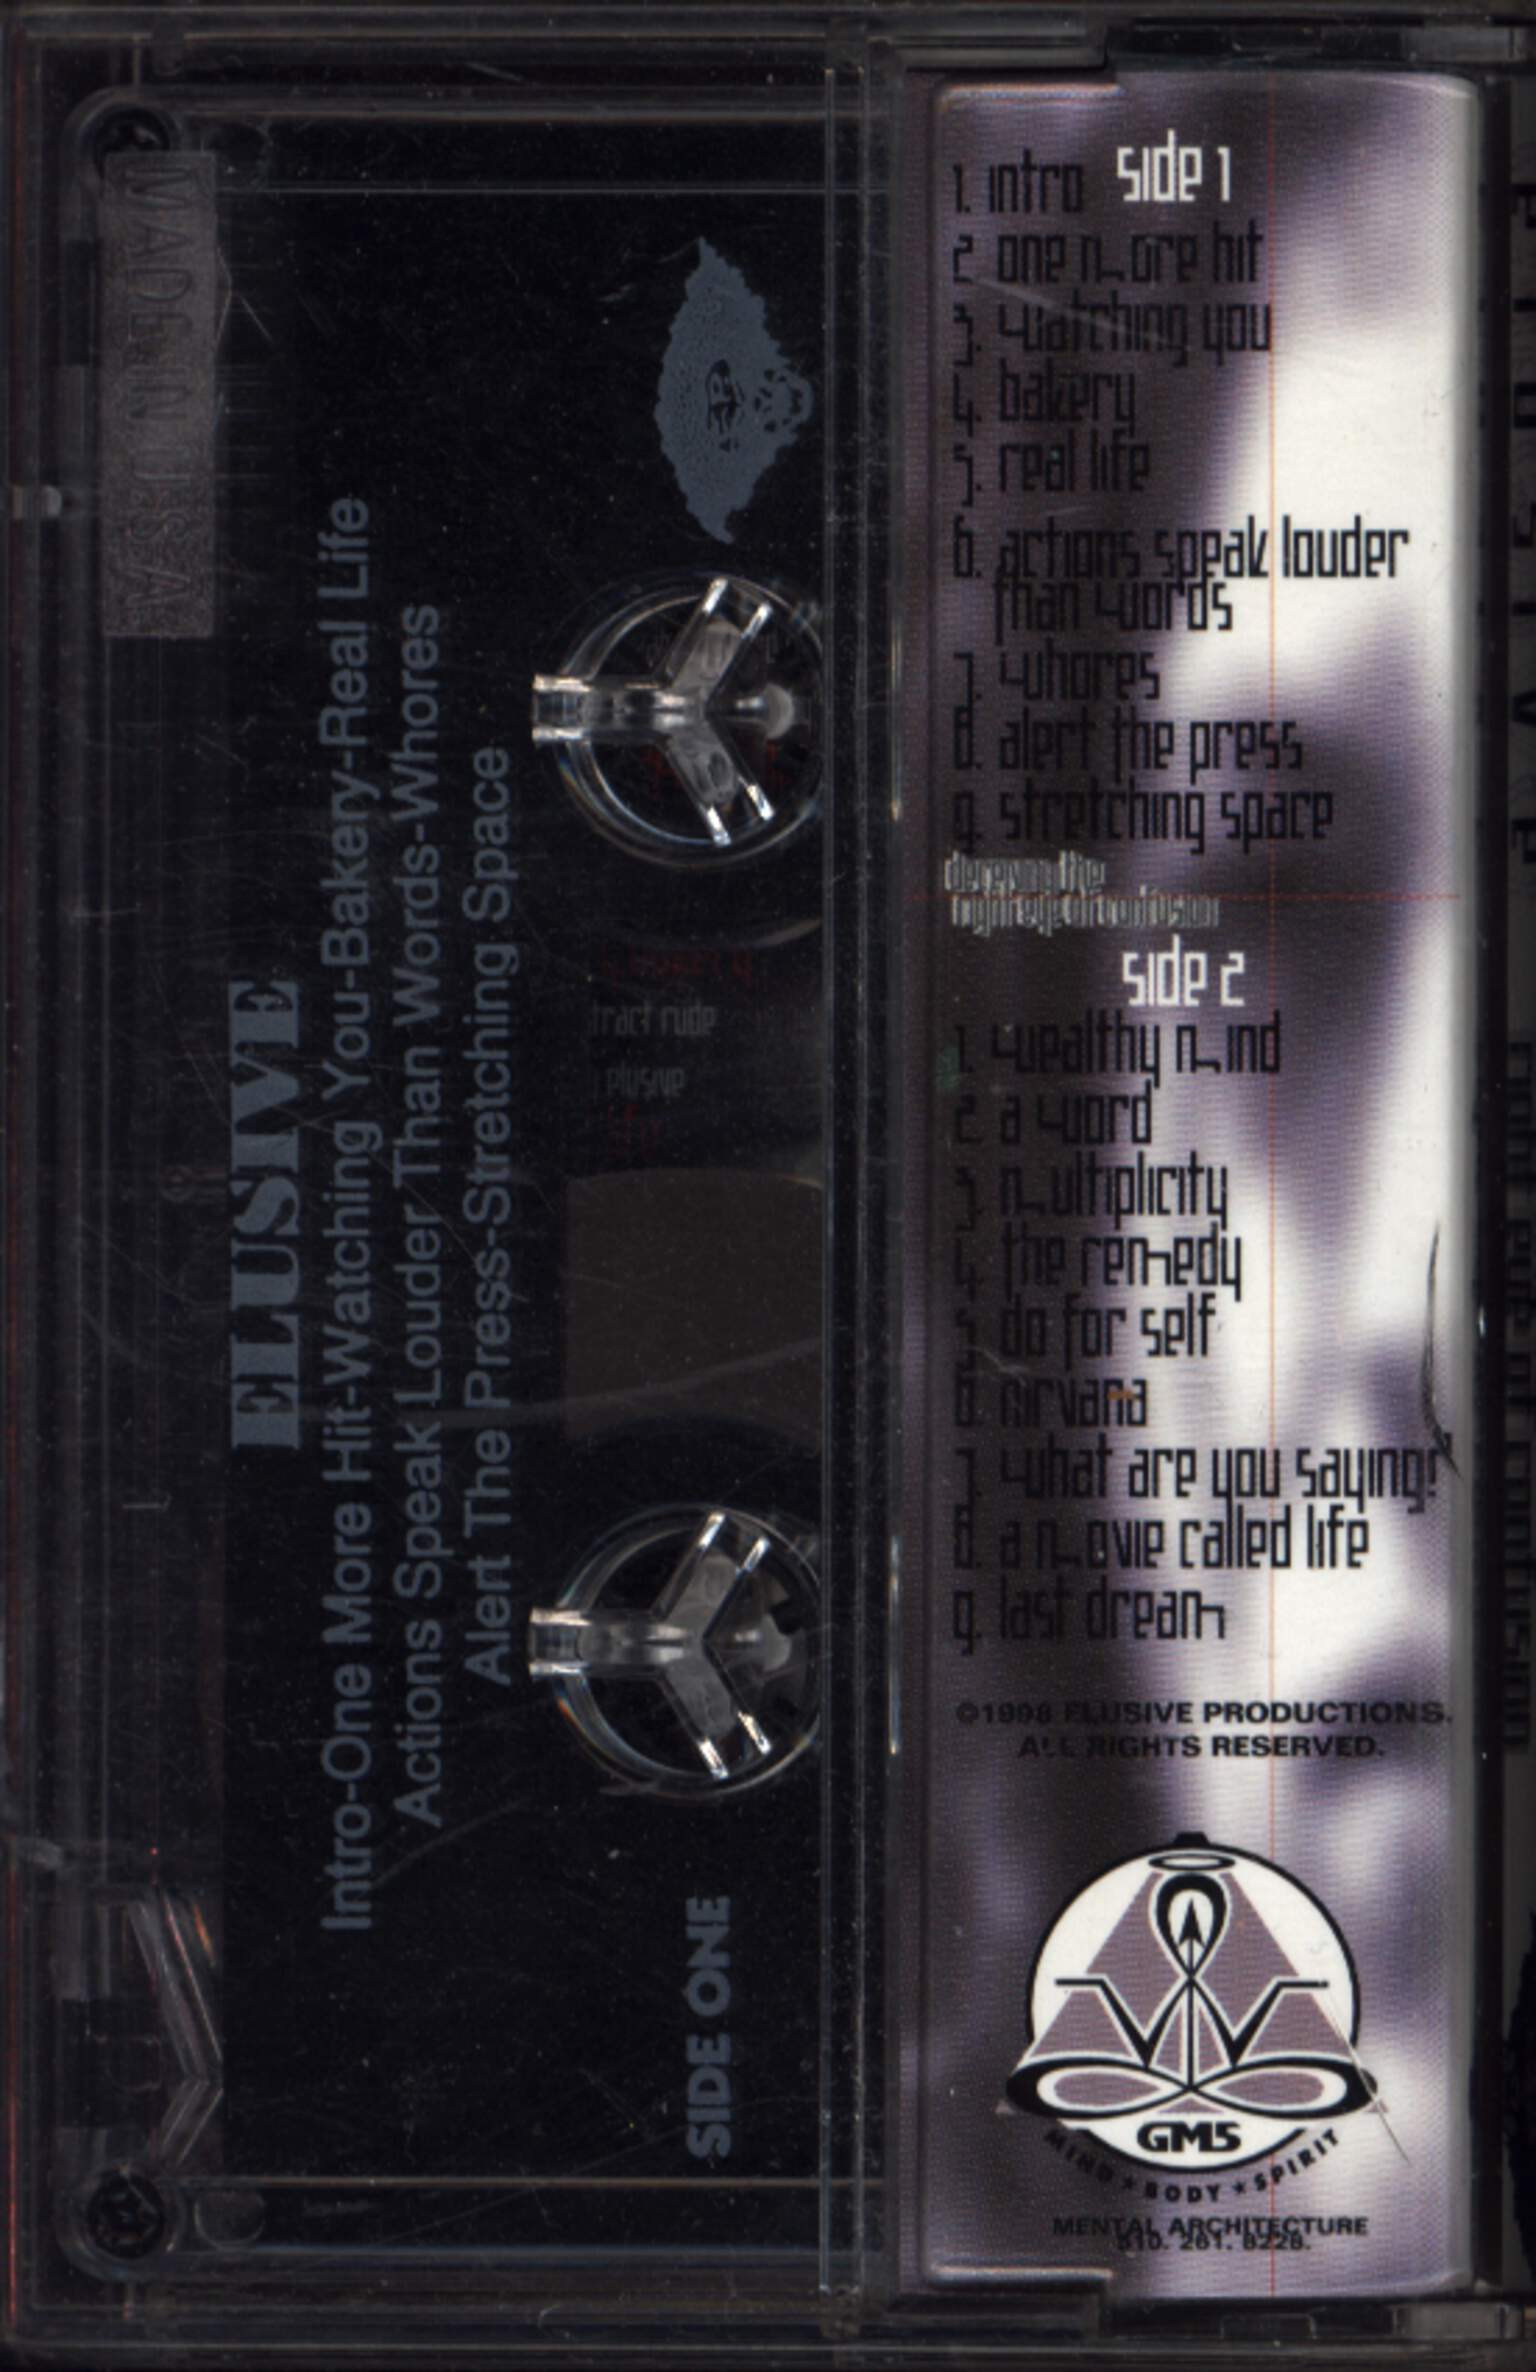 Elusive: Deceiving The Right Eye Of Confusion, Compact Cassette